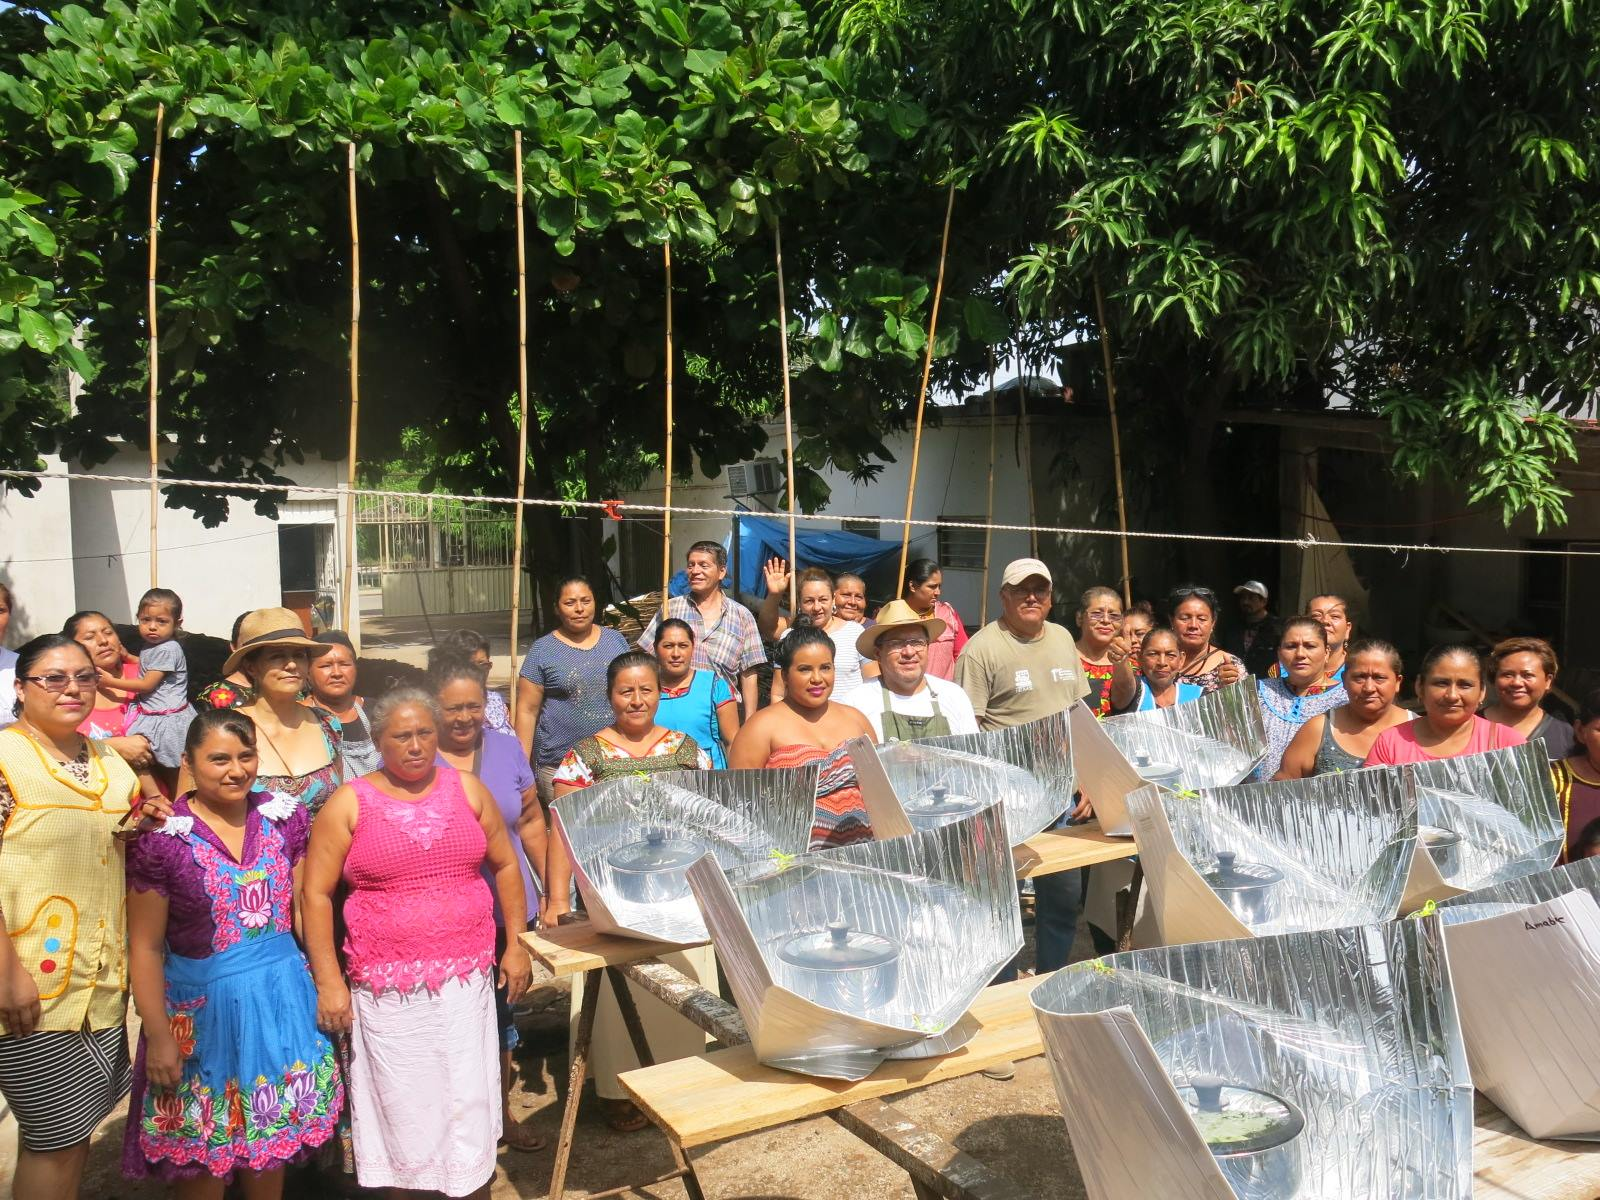 45 Haines solar cookers donated to earthquake victims